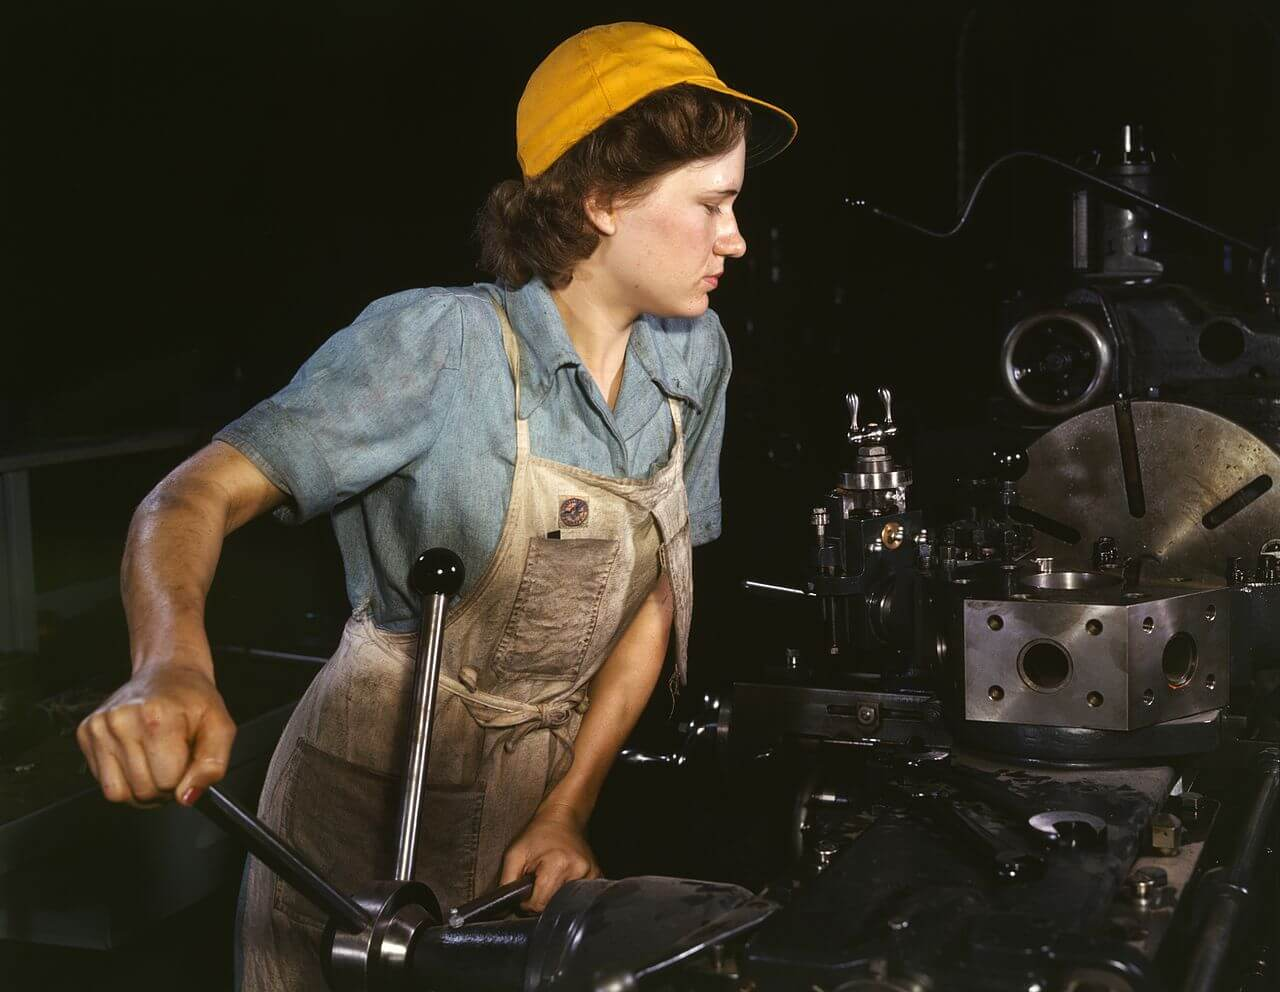 essay on gender roles and stereotypes blog  a w operates a turret lathe at the consolidated aircraft corporation plant in 1942